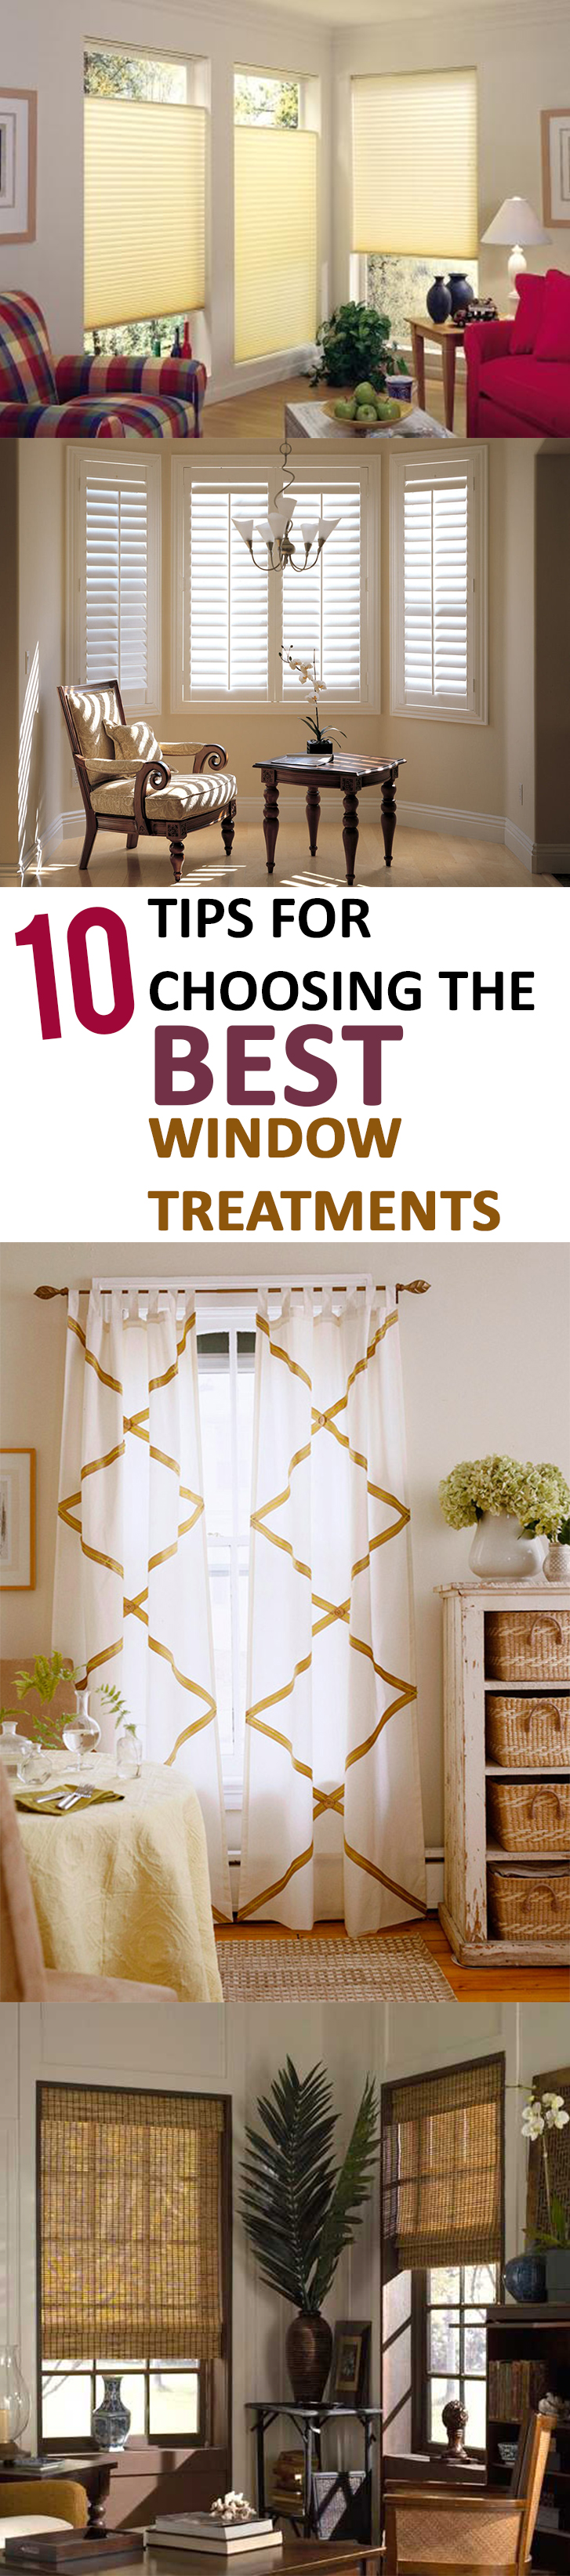 10 Tips for Choosing the Best Window Treatments